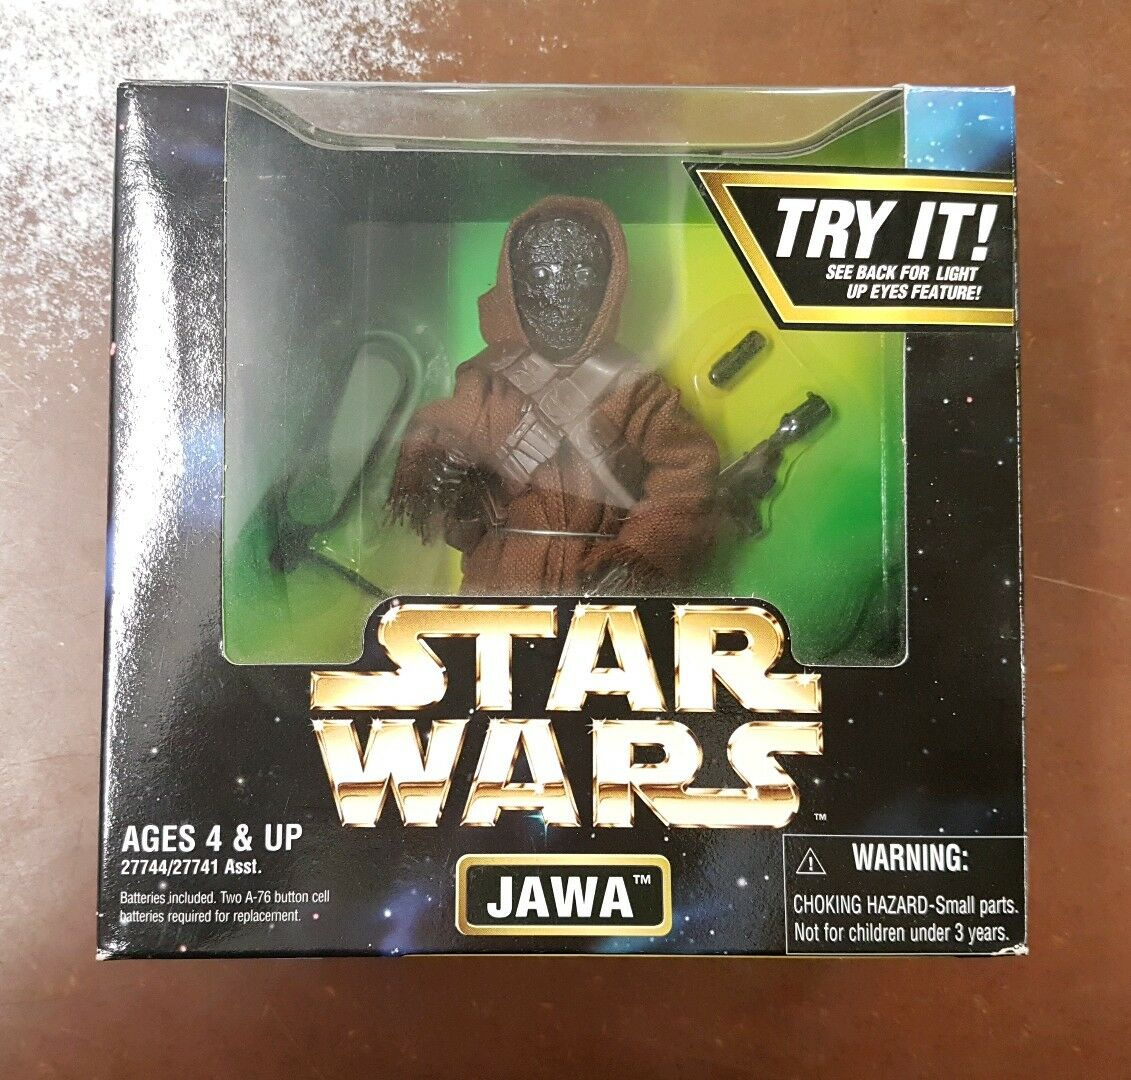 1997  Star Wars 6 inch Jawa 1 6 scale 12 inch figure collection  POTF2